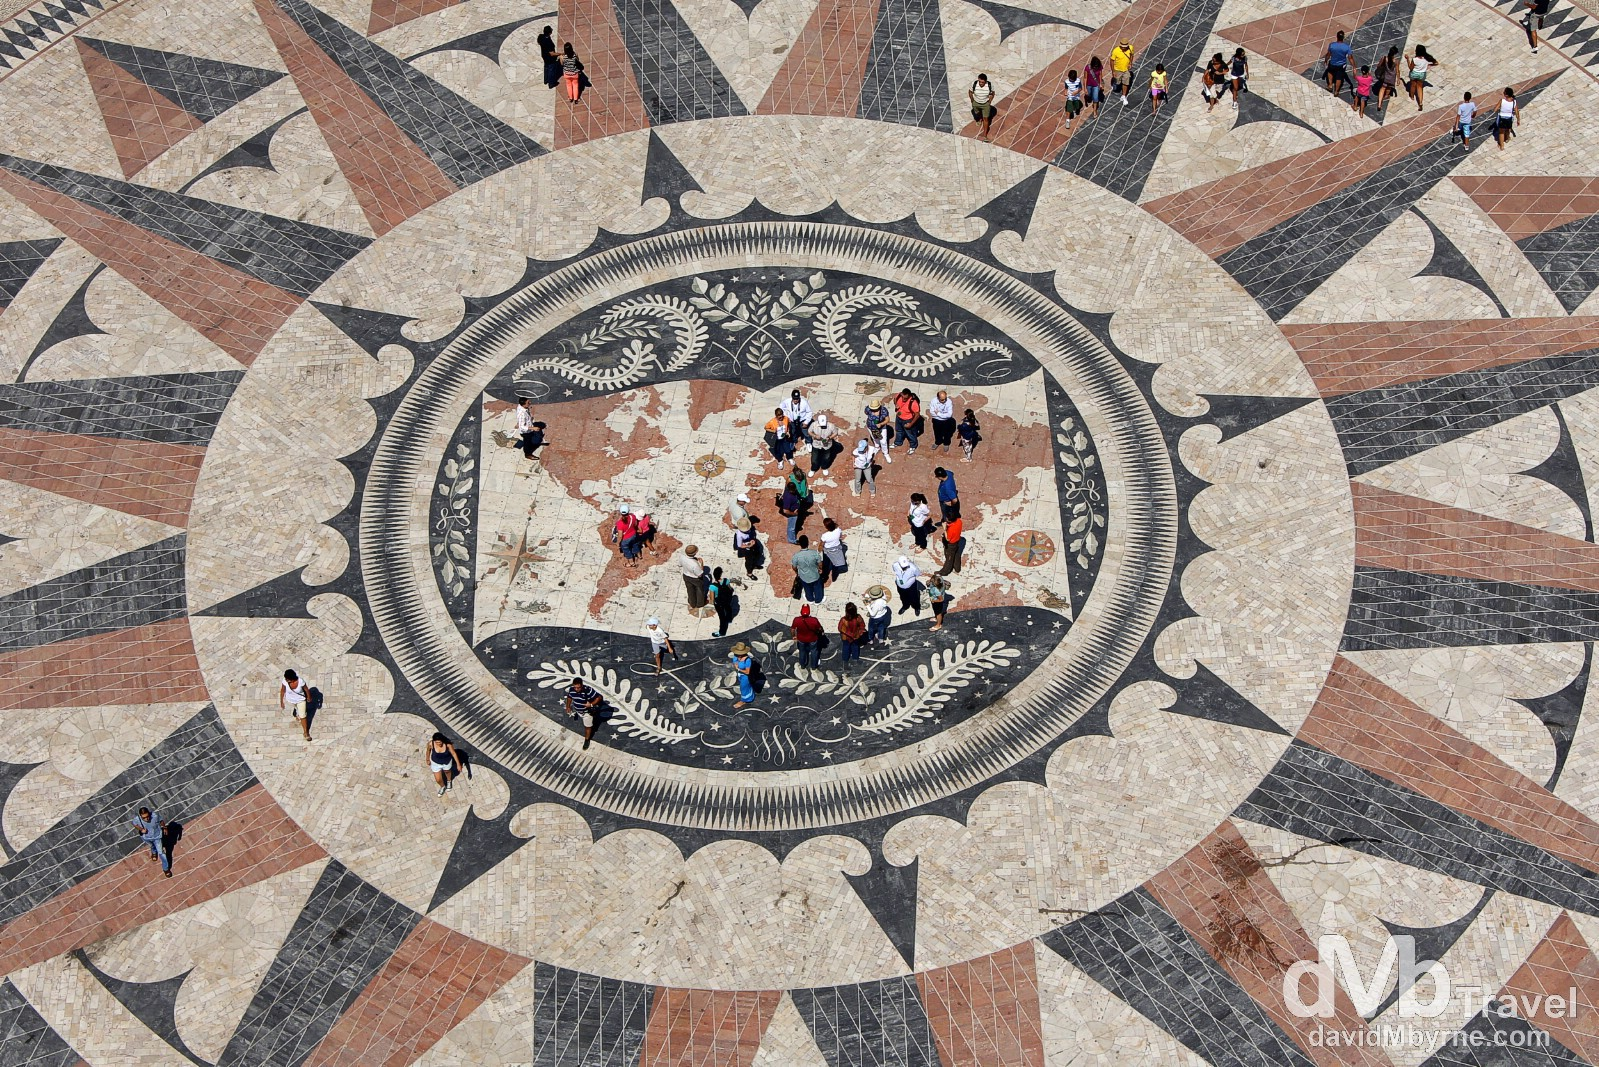 The view from the top of the Monument To The Discoveries in  Belem, Lisbon, Portugal. August 26th 2013.